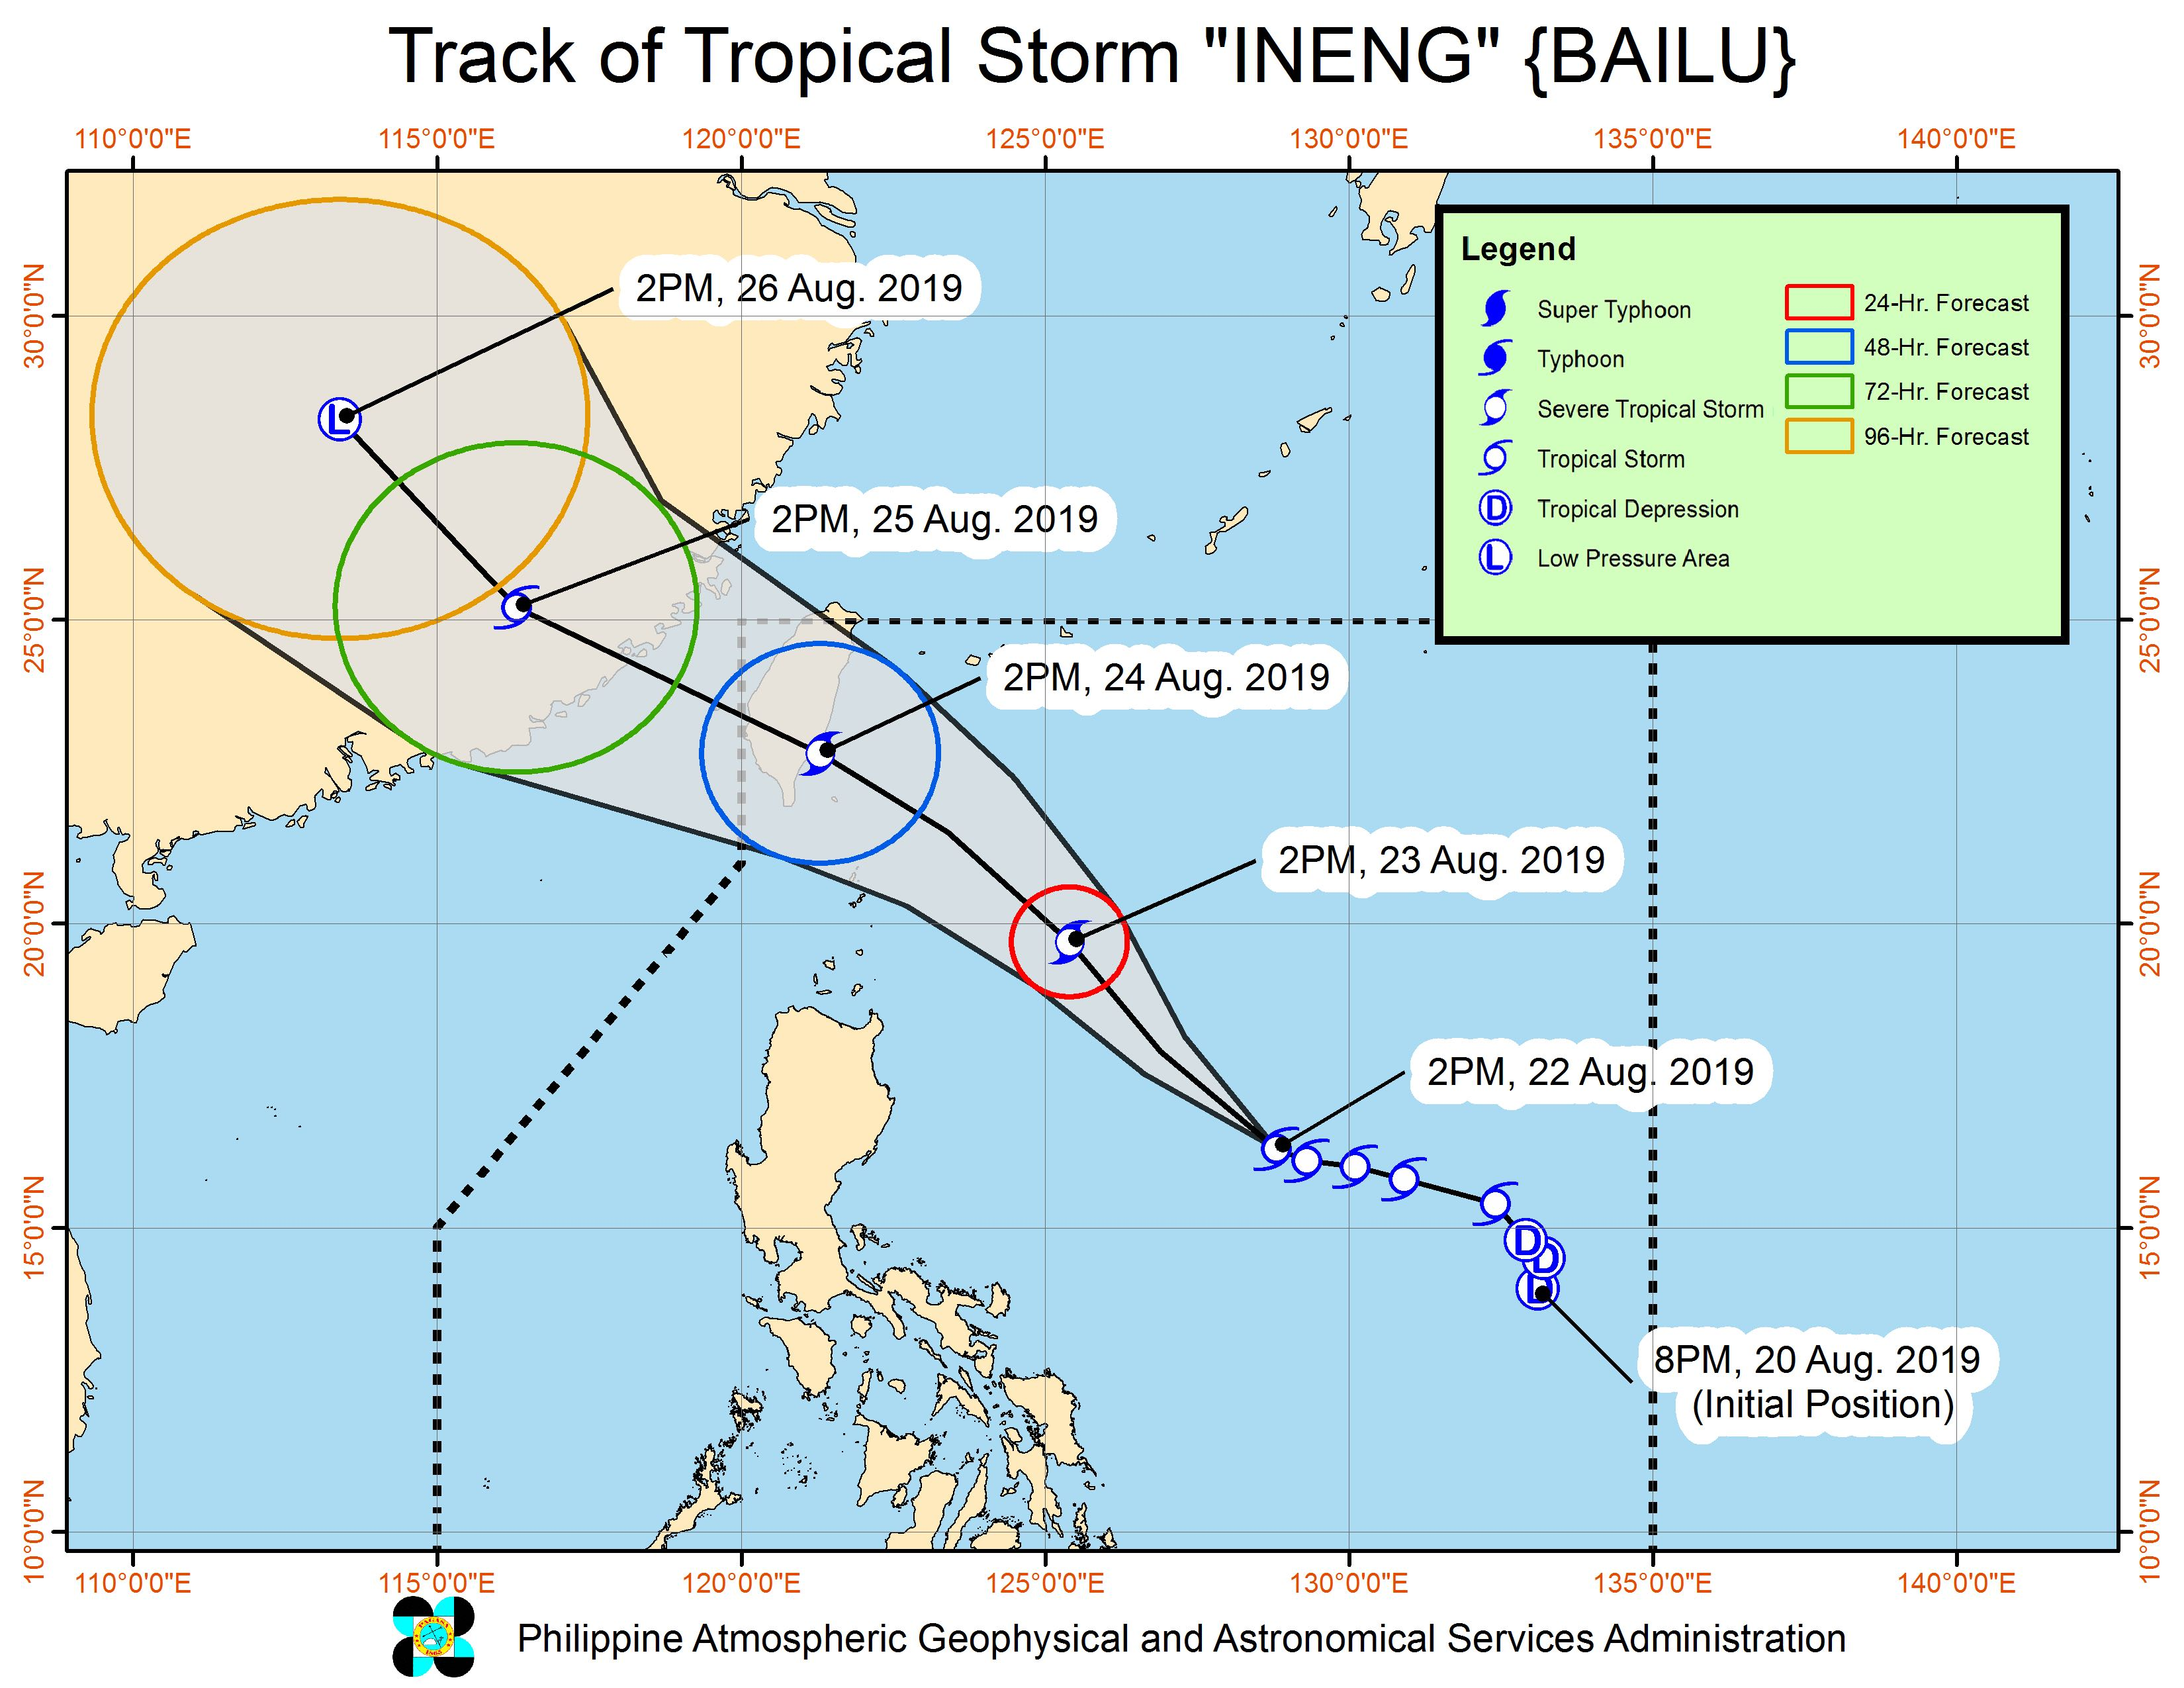 Forecast track of Tropical Storm Ineng (Bailu) as of August 22, 2019, 5 pm. Image from PAGASA